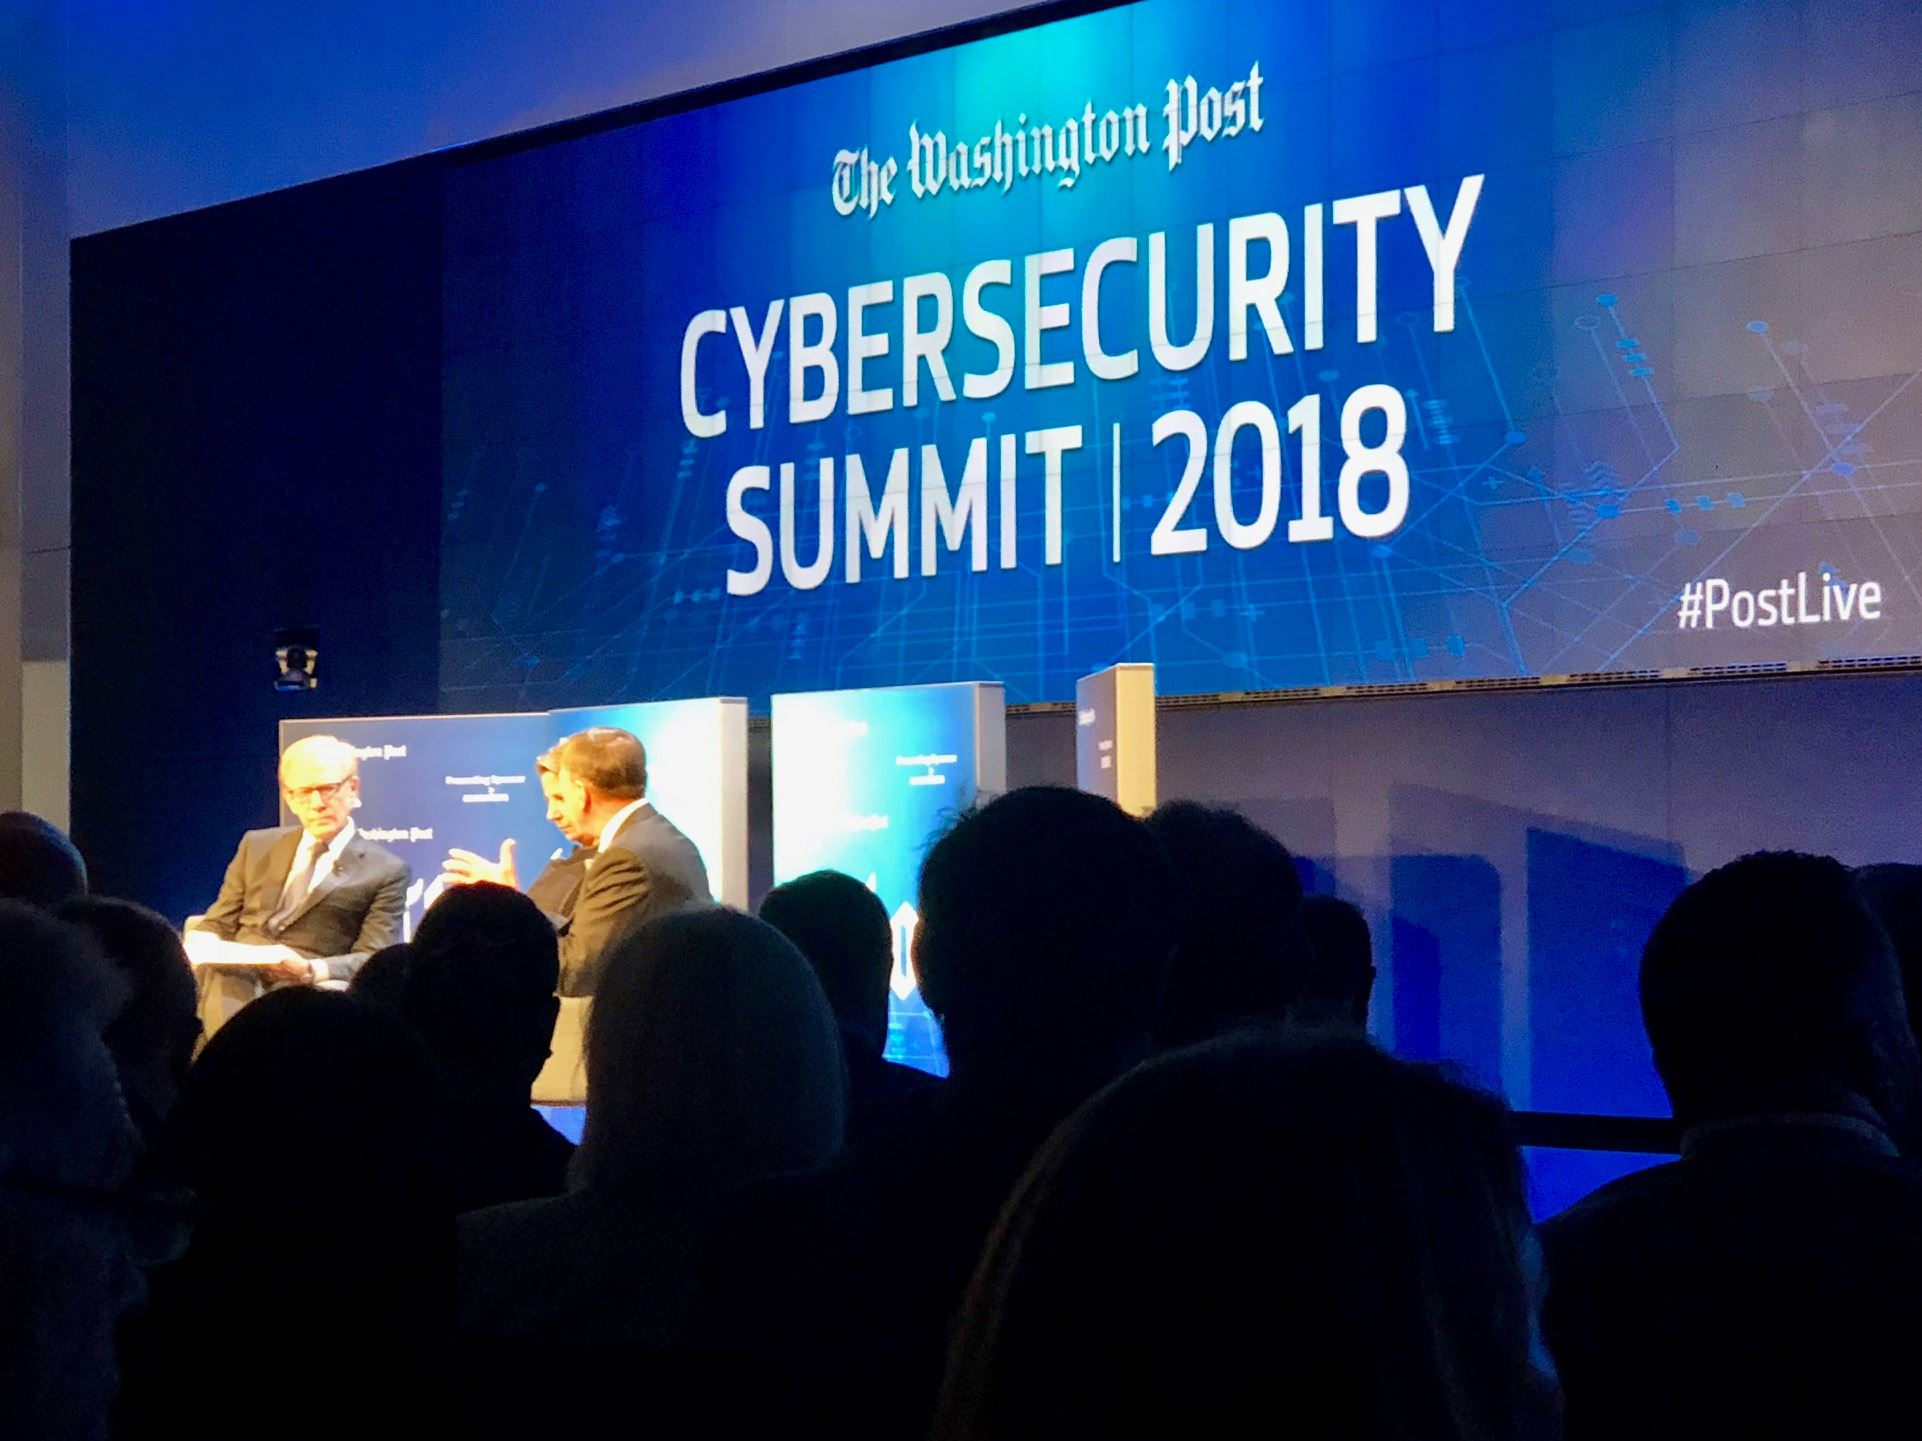 Washington Post Cybersecurity Summit